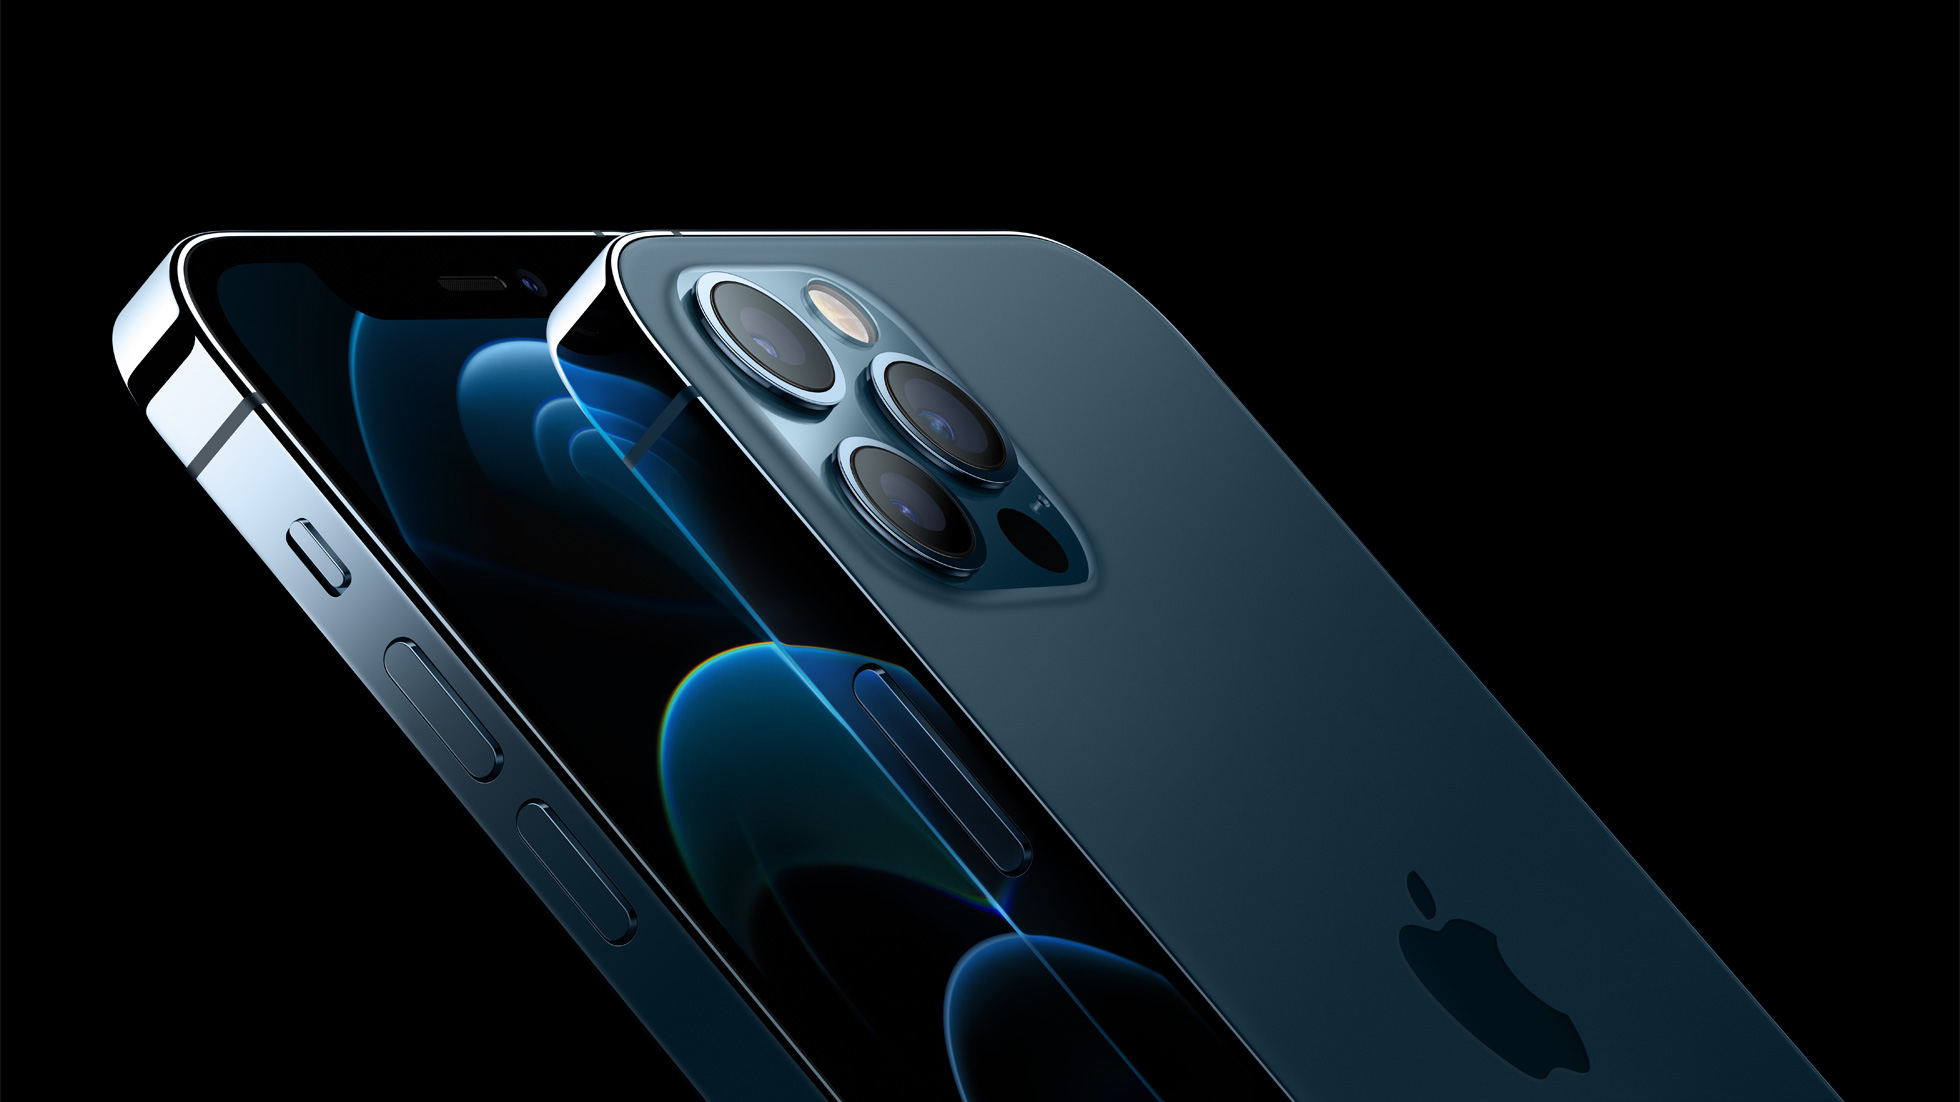 Apple Debuts iPhone 12, iPhone 12 Pro, and Homepod Mini